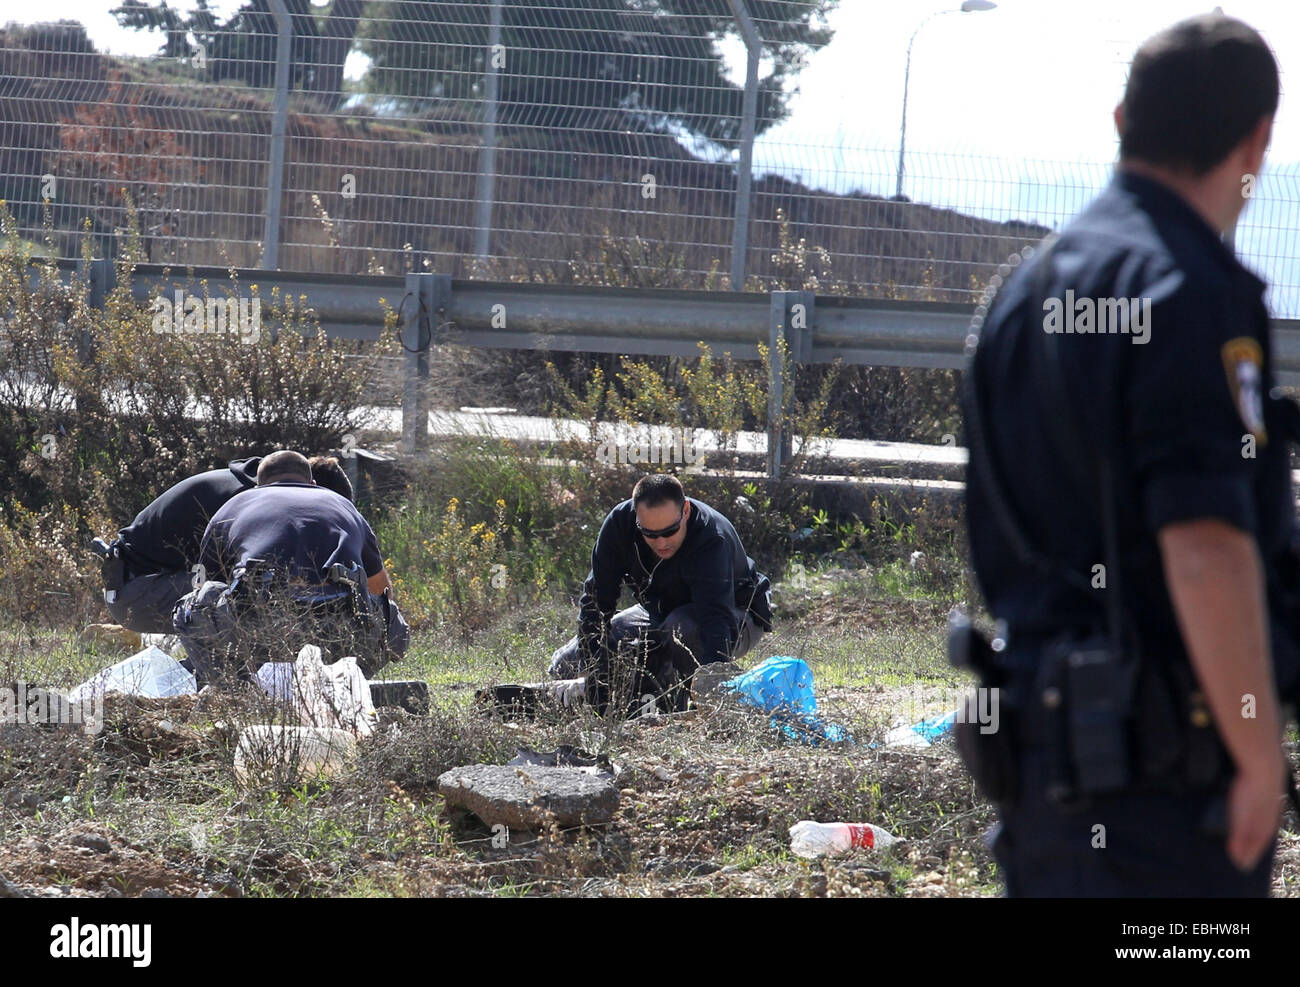 Jerusalem. 1st Dec, 2014. Israeli police carry out forensic work on the site of an alleged stabbing attack outside - Stock Image